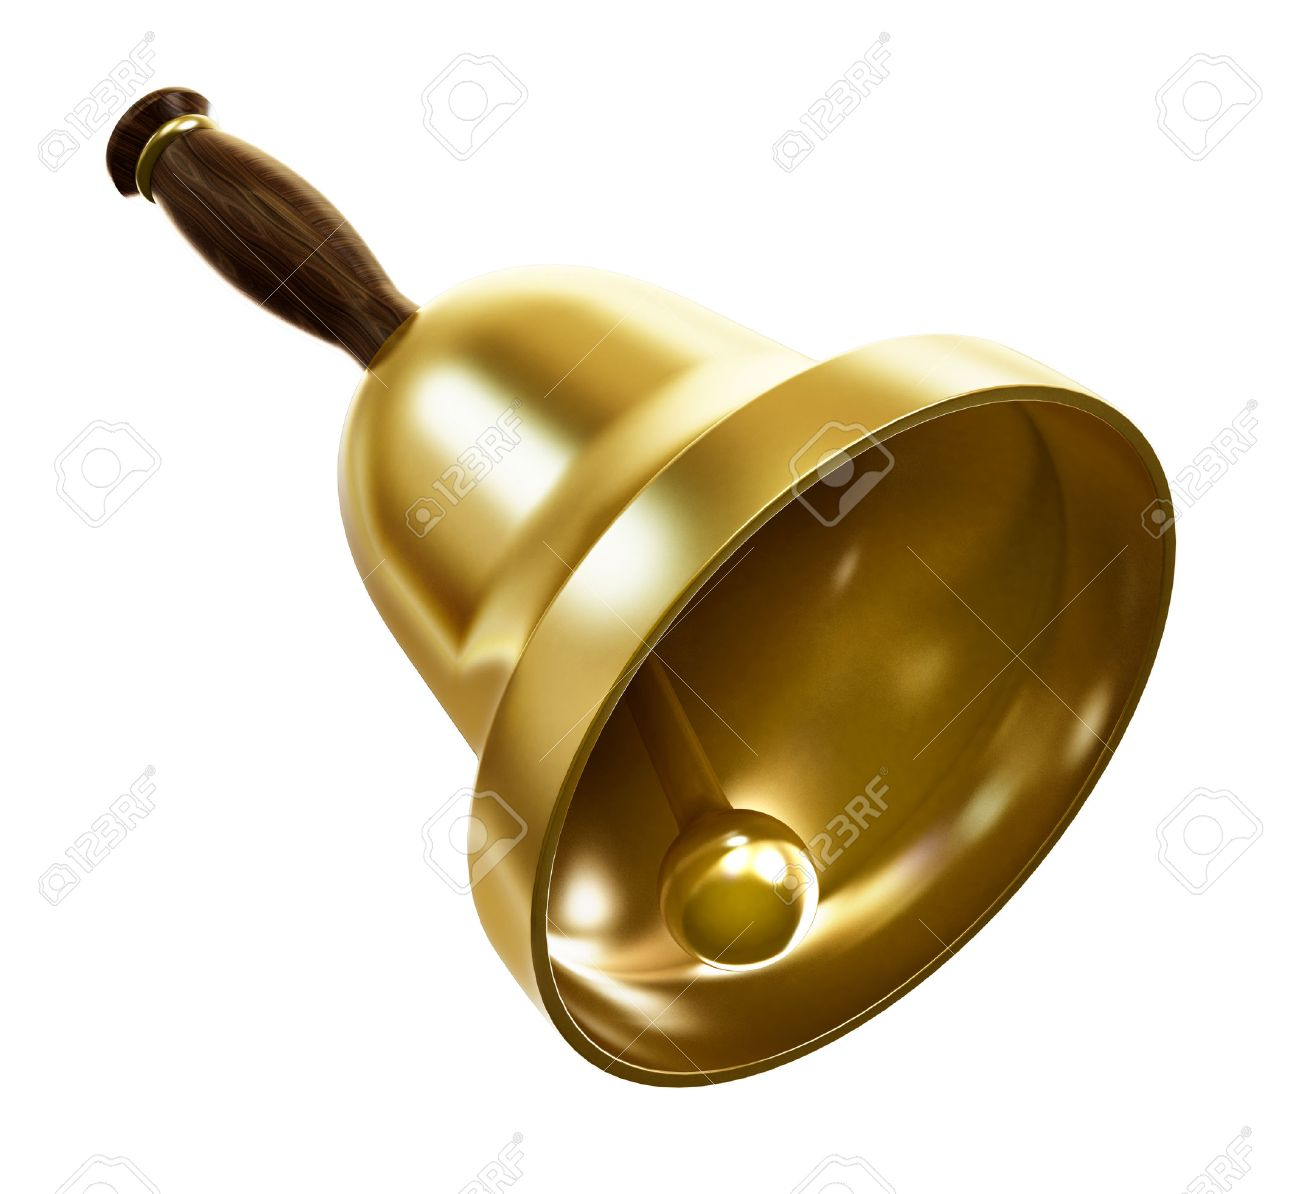 Gold school bell isolated on black background Stock Photo - 48931911